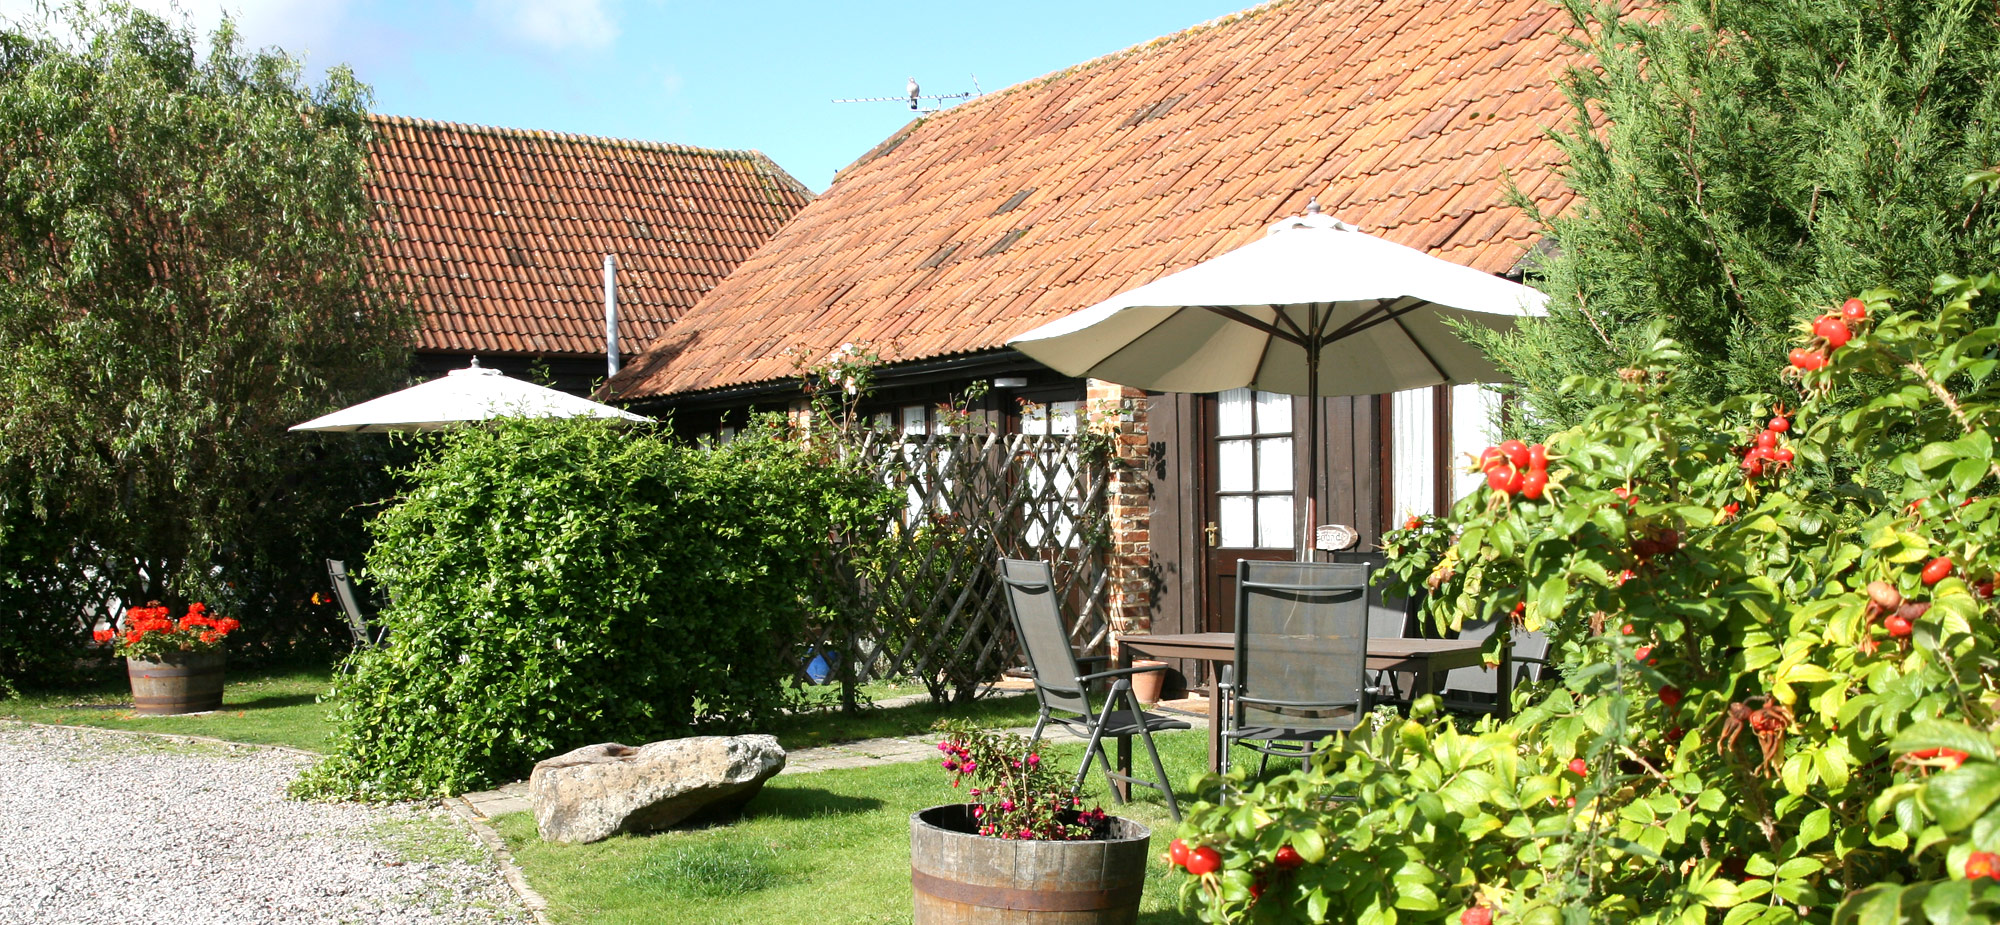 Rendells farm holiday cottages self catering holidays for Premium holiday cottages